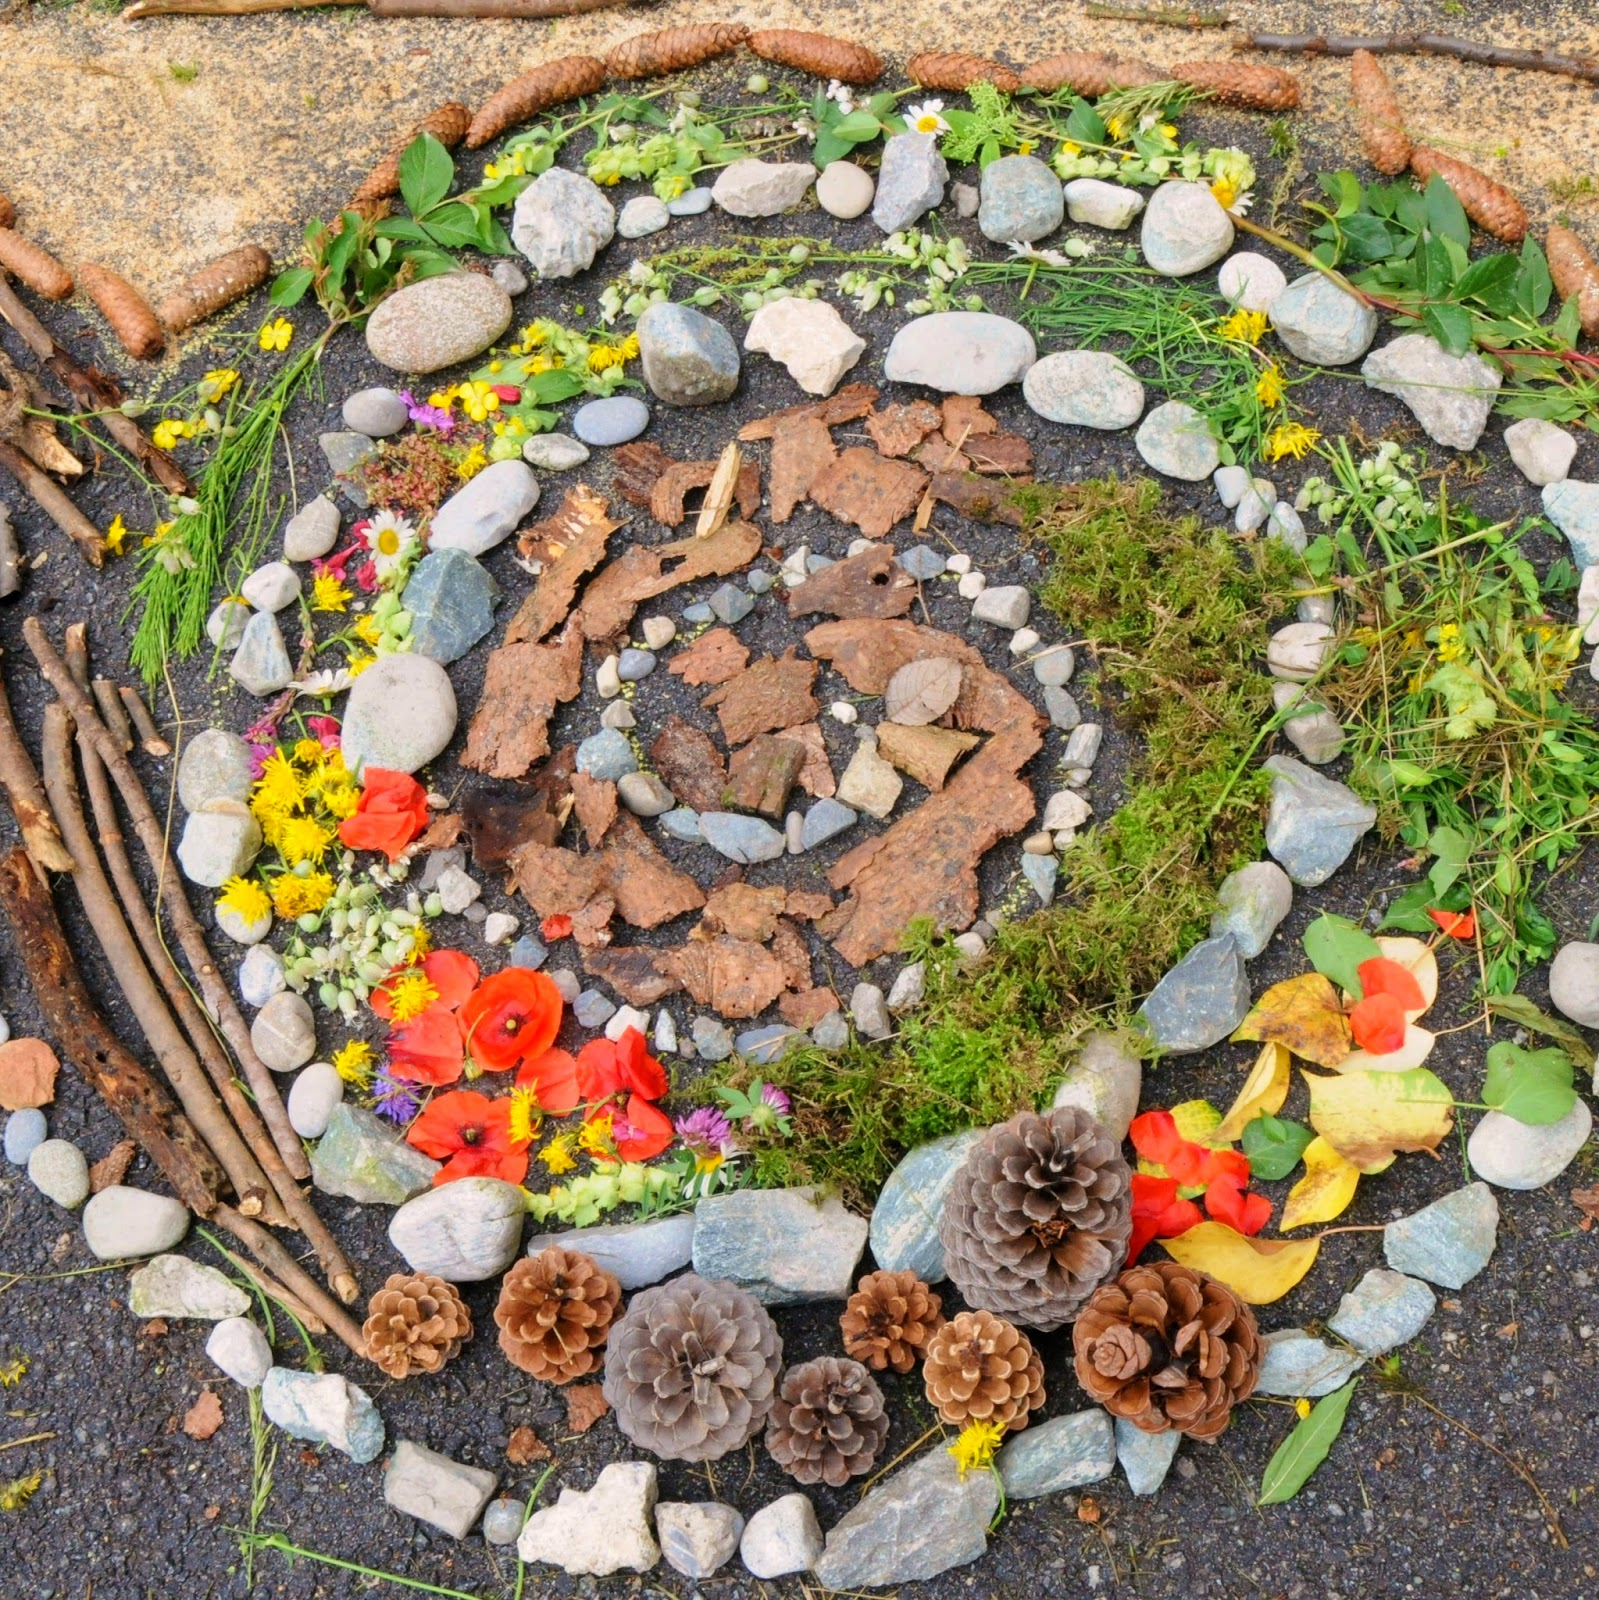 faire un land art dans la nature